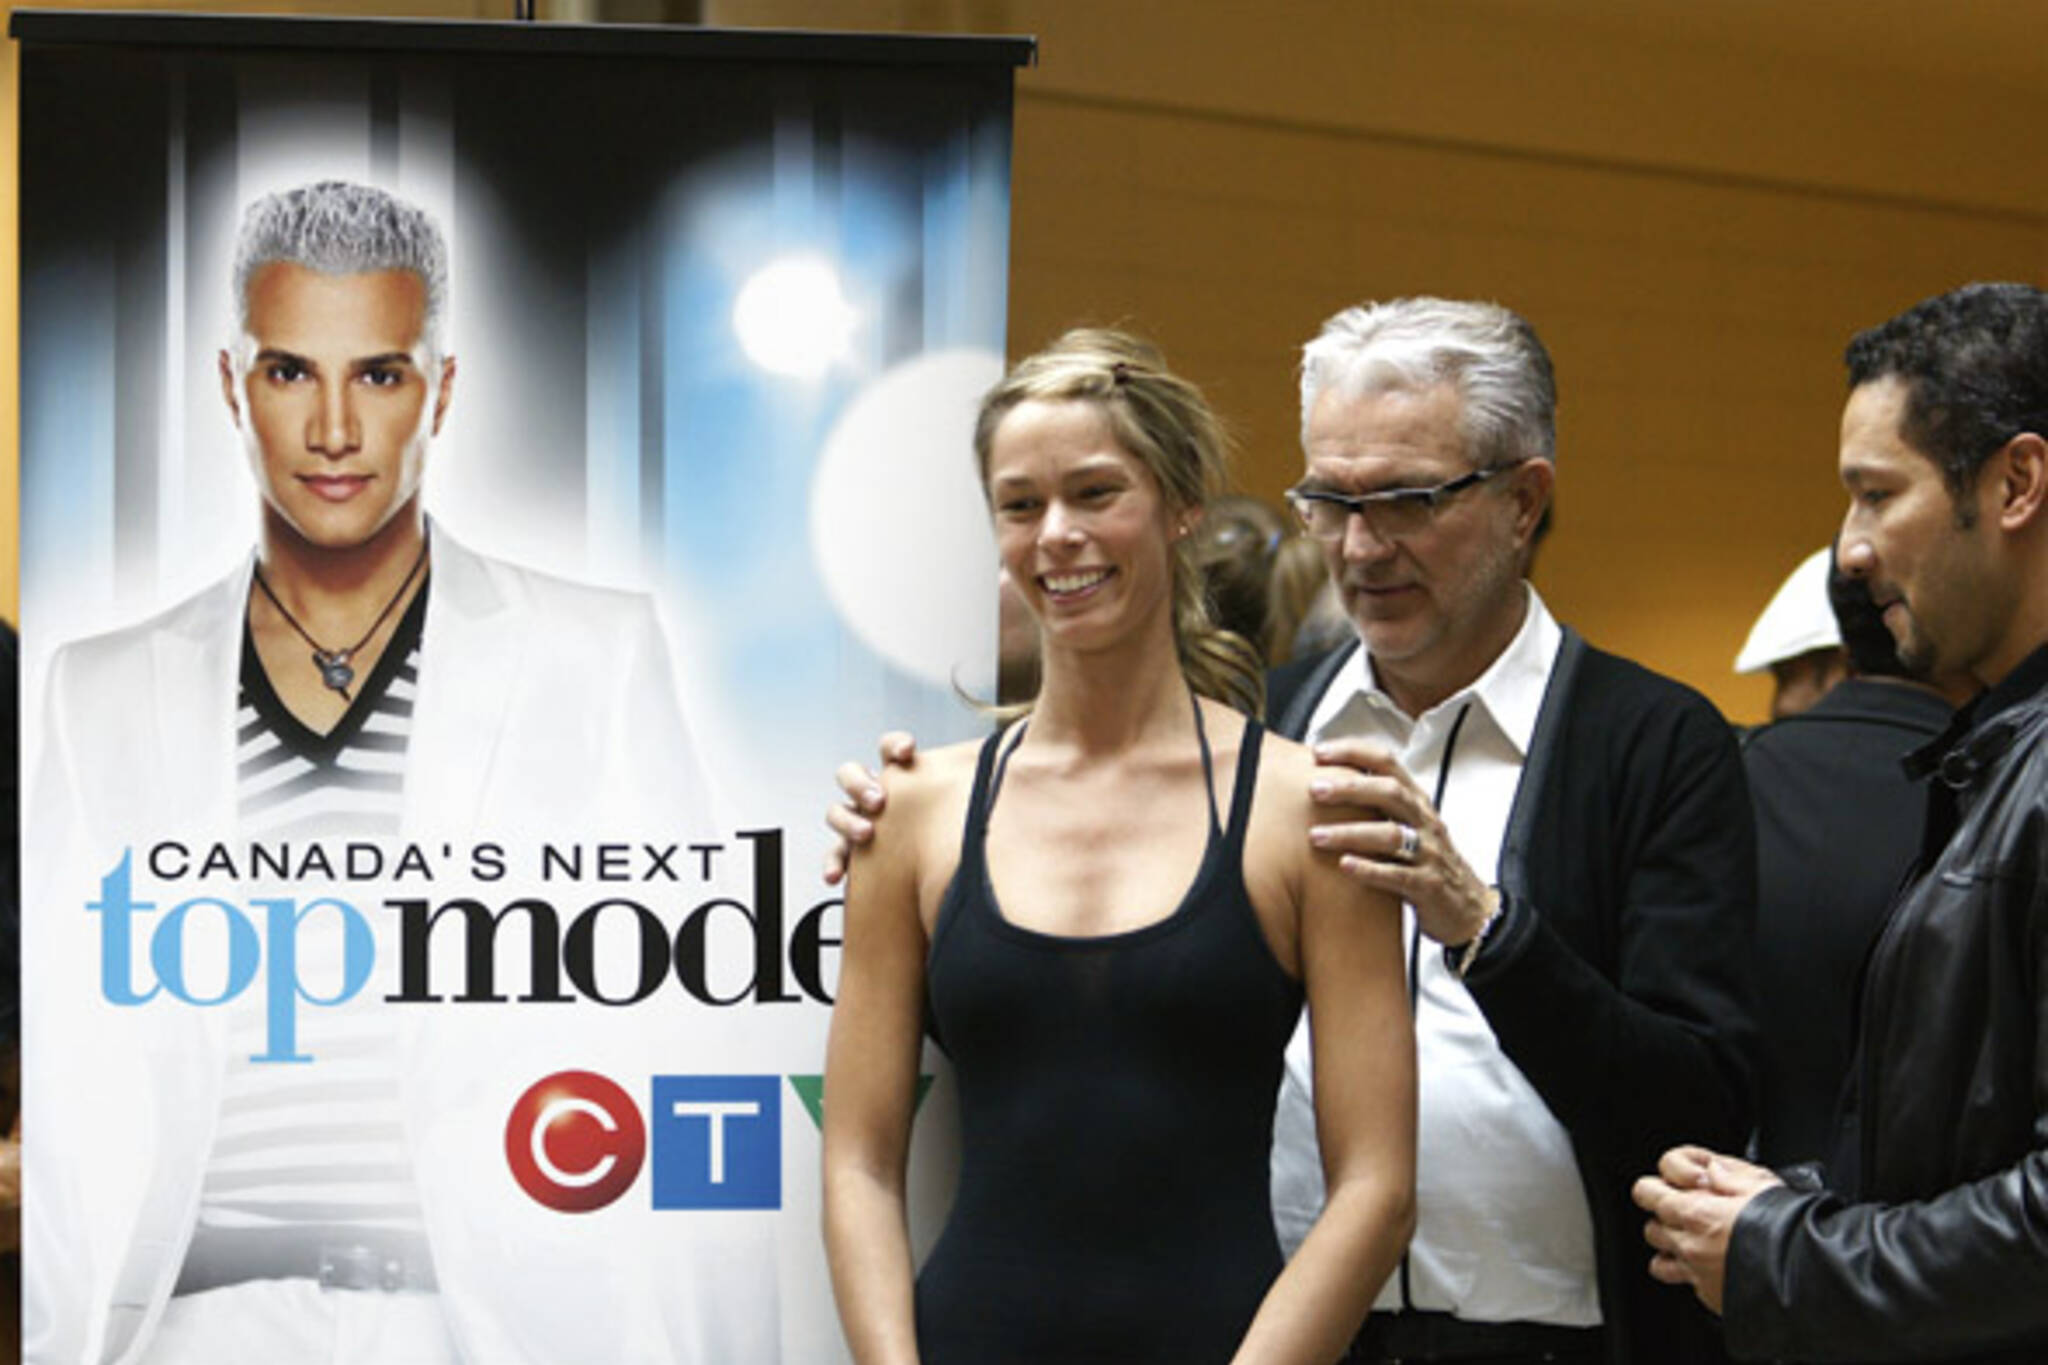 Canada's Next Top Model auditions in Toronto's Fairview Mall, led by casting agent Elmer Olsen